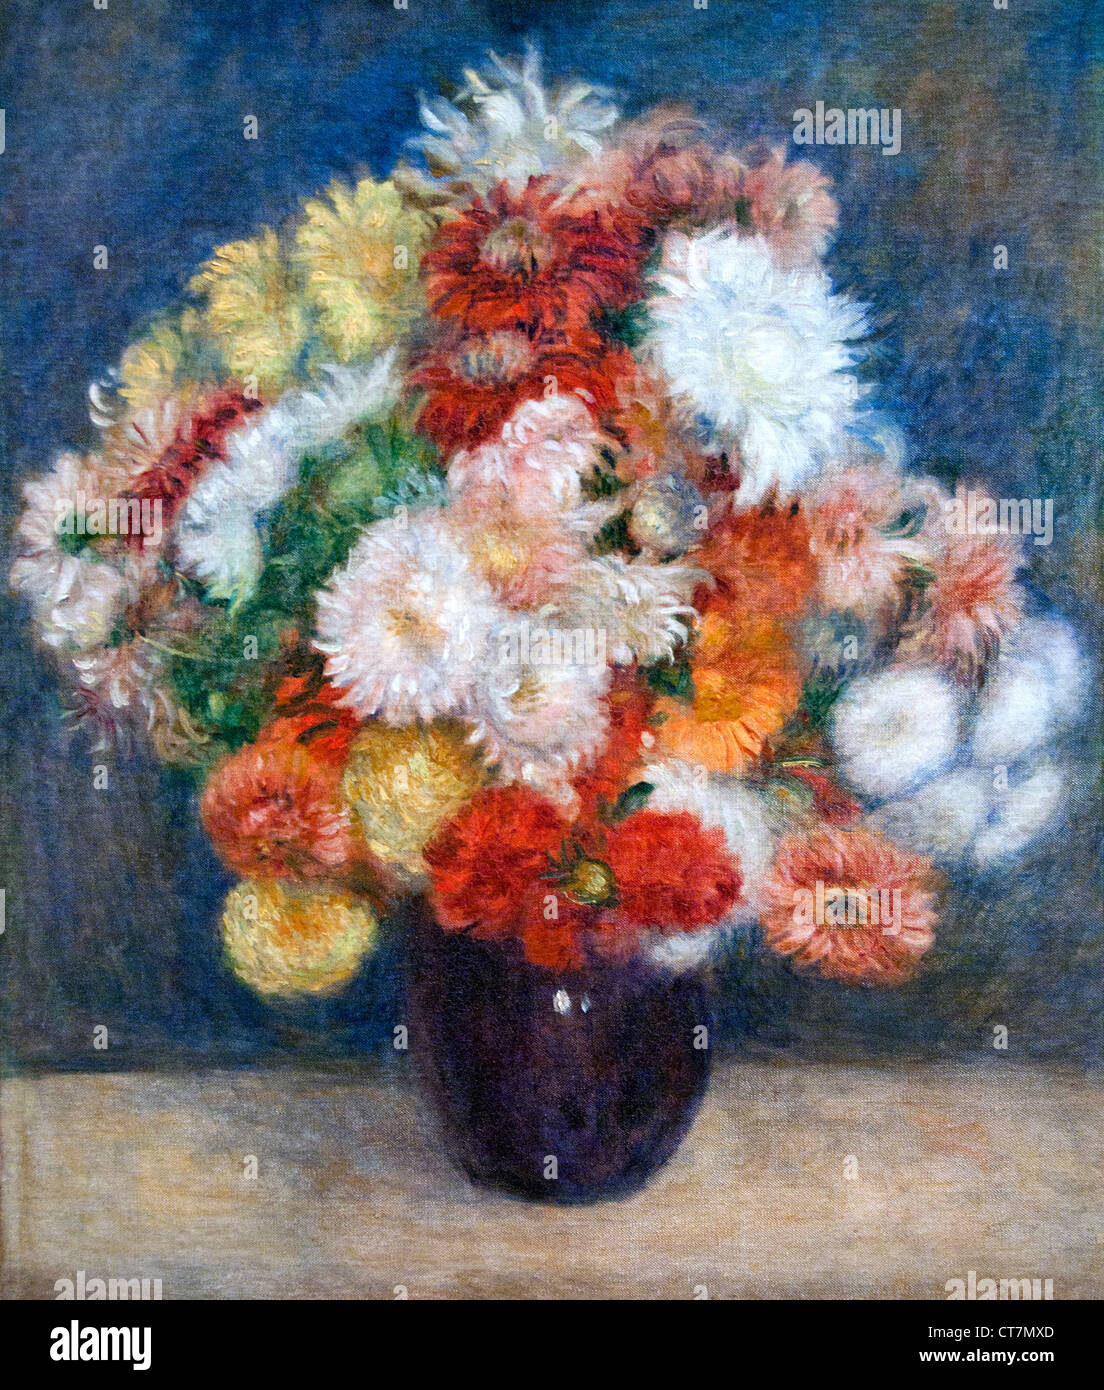 Bouqet - Flowers Pierre Auguste Renoir 1841-1919 French Impressionist France - Stock Image